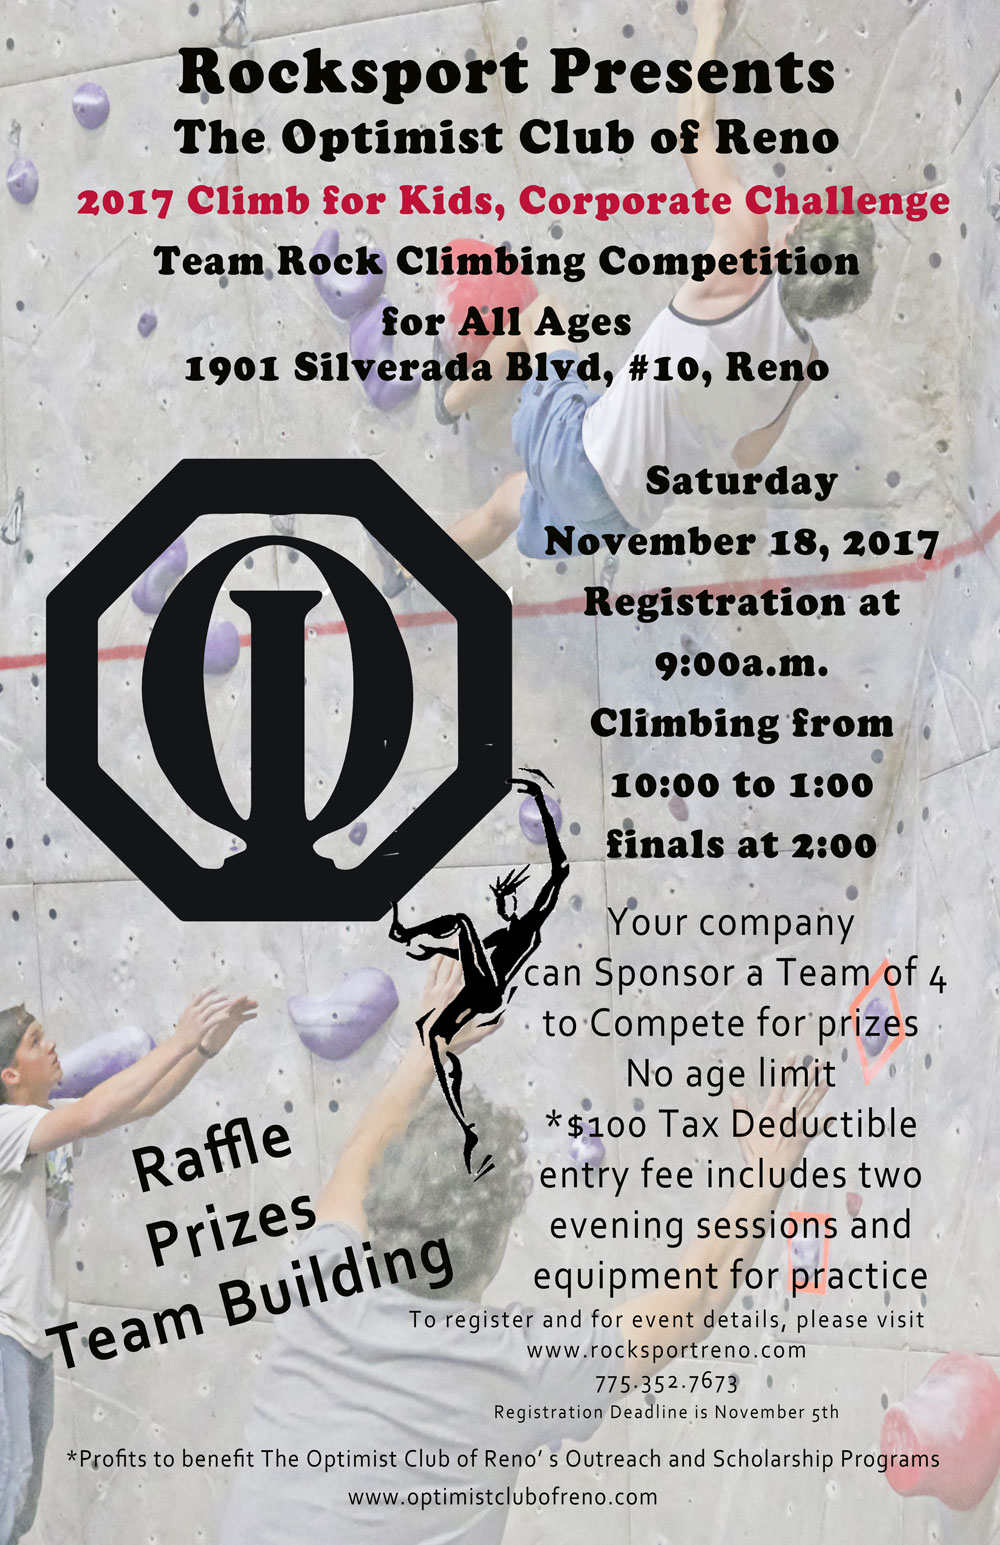 2017 Climb for Kids, Corporate Challenge